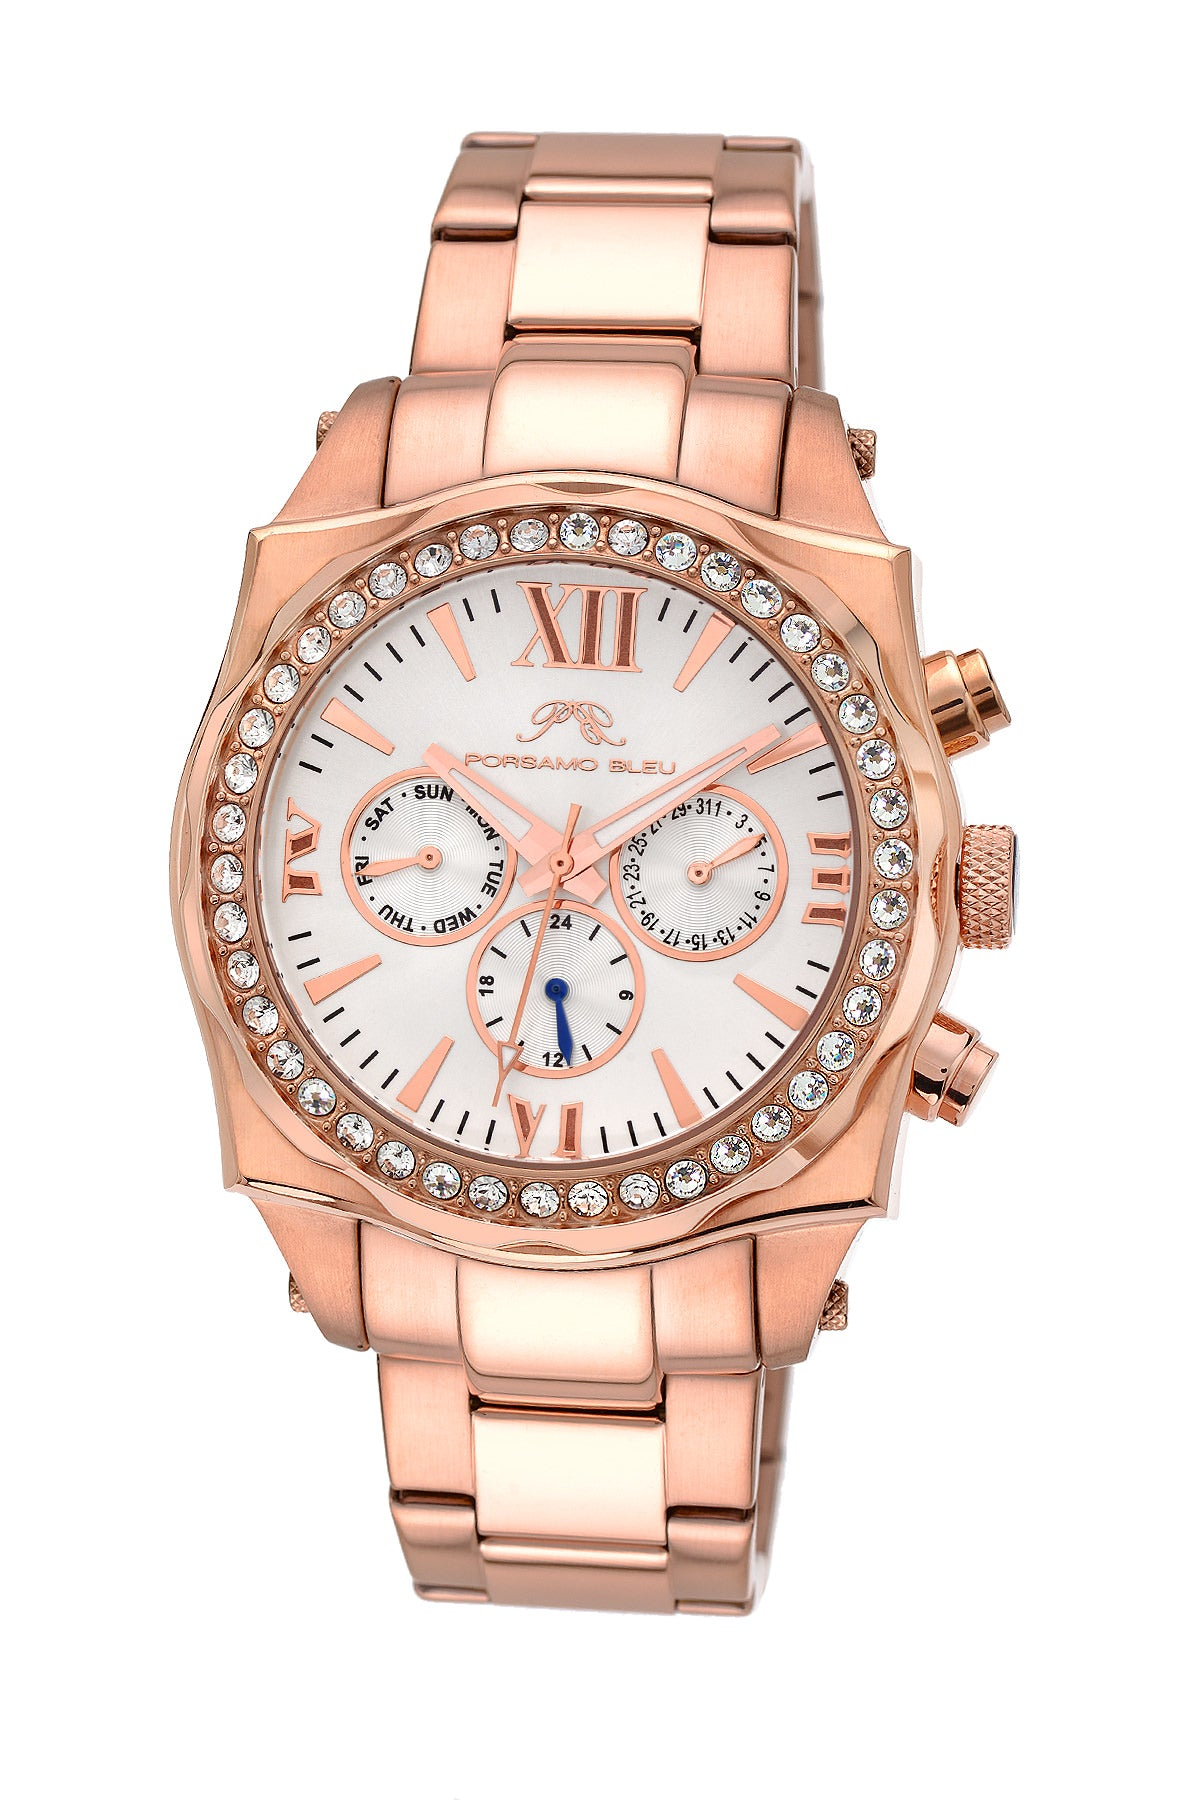 Porsamo Bleu Milan Crystal luxury women's stainless steel watch, Swarovski® crystals, rose, 038DMCS